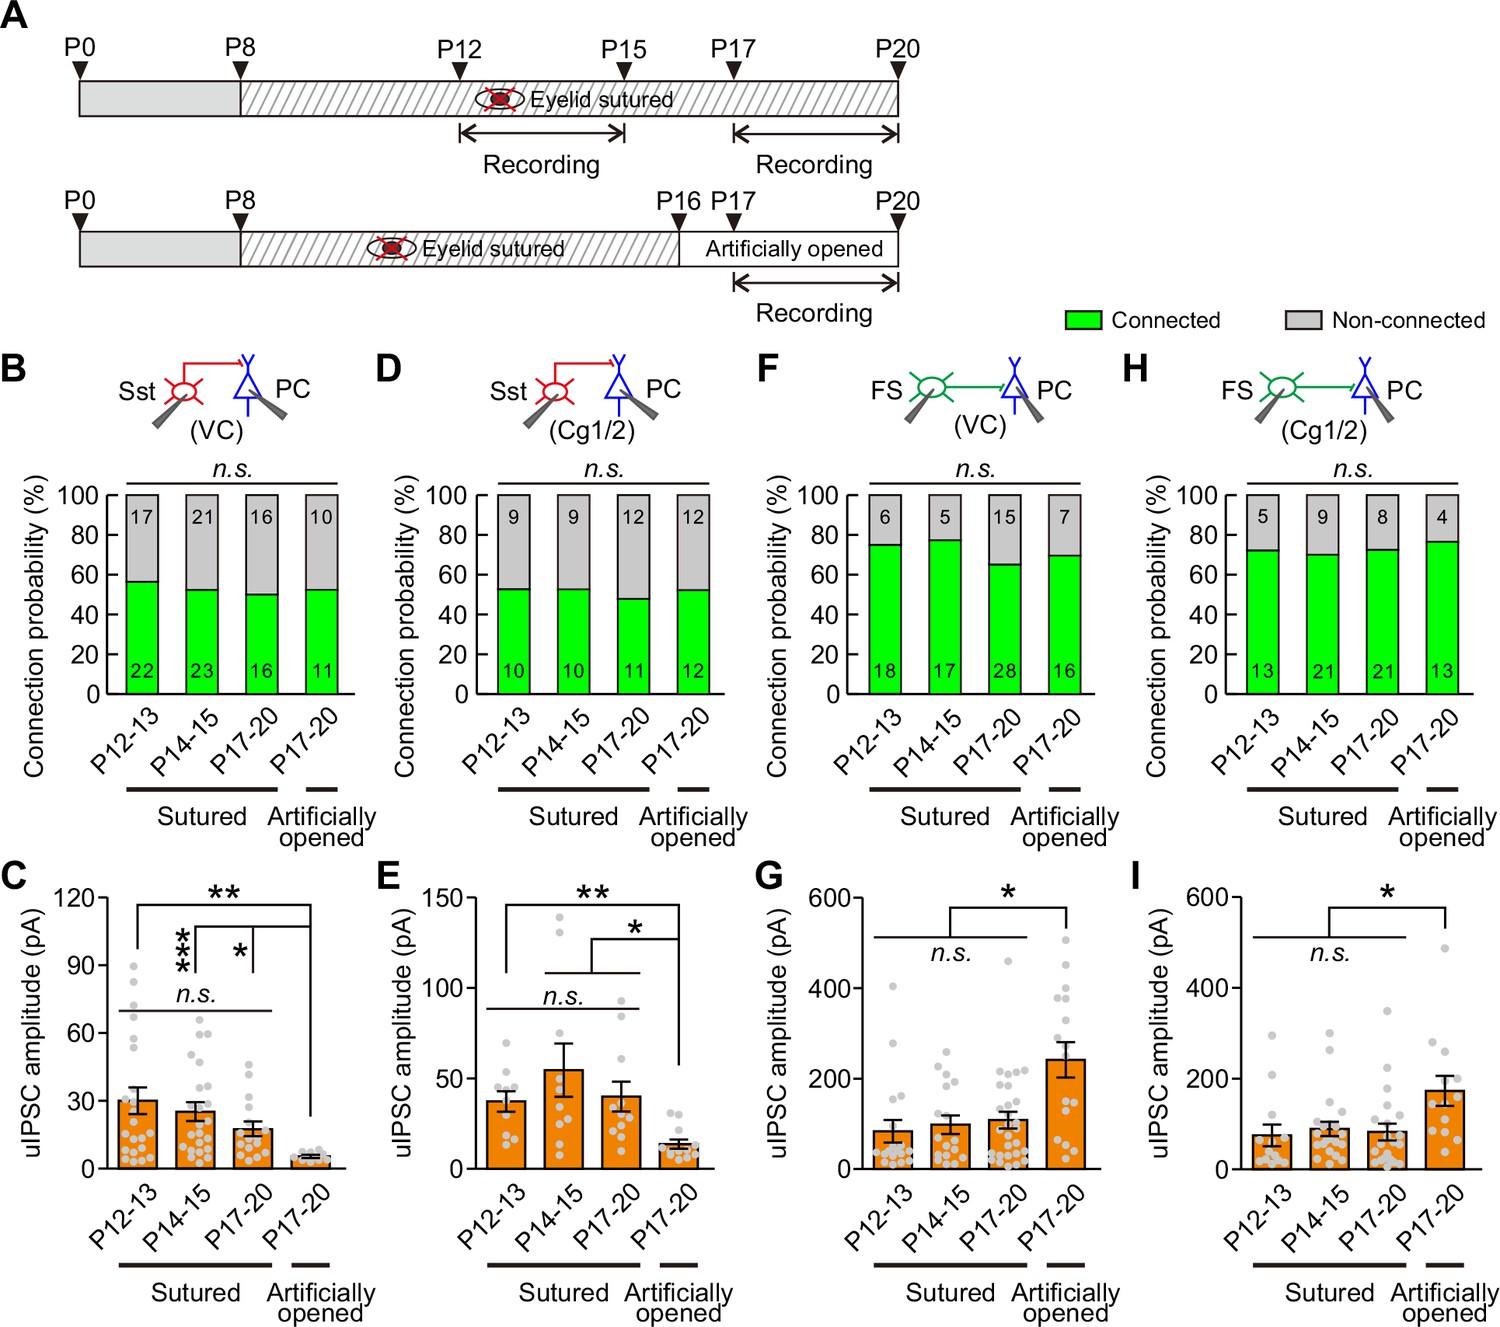 Eye Opening Differentially Modulates Inhibitory Synaptic In The Above Circuit When Toggle Switch Is Open As Shown 12 Strength Of Transmission From Sst Ins To Pcs And Fs